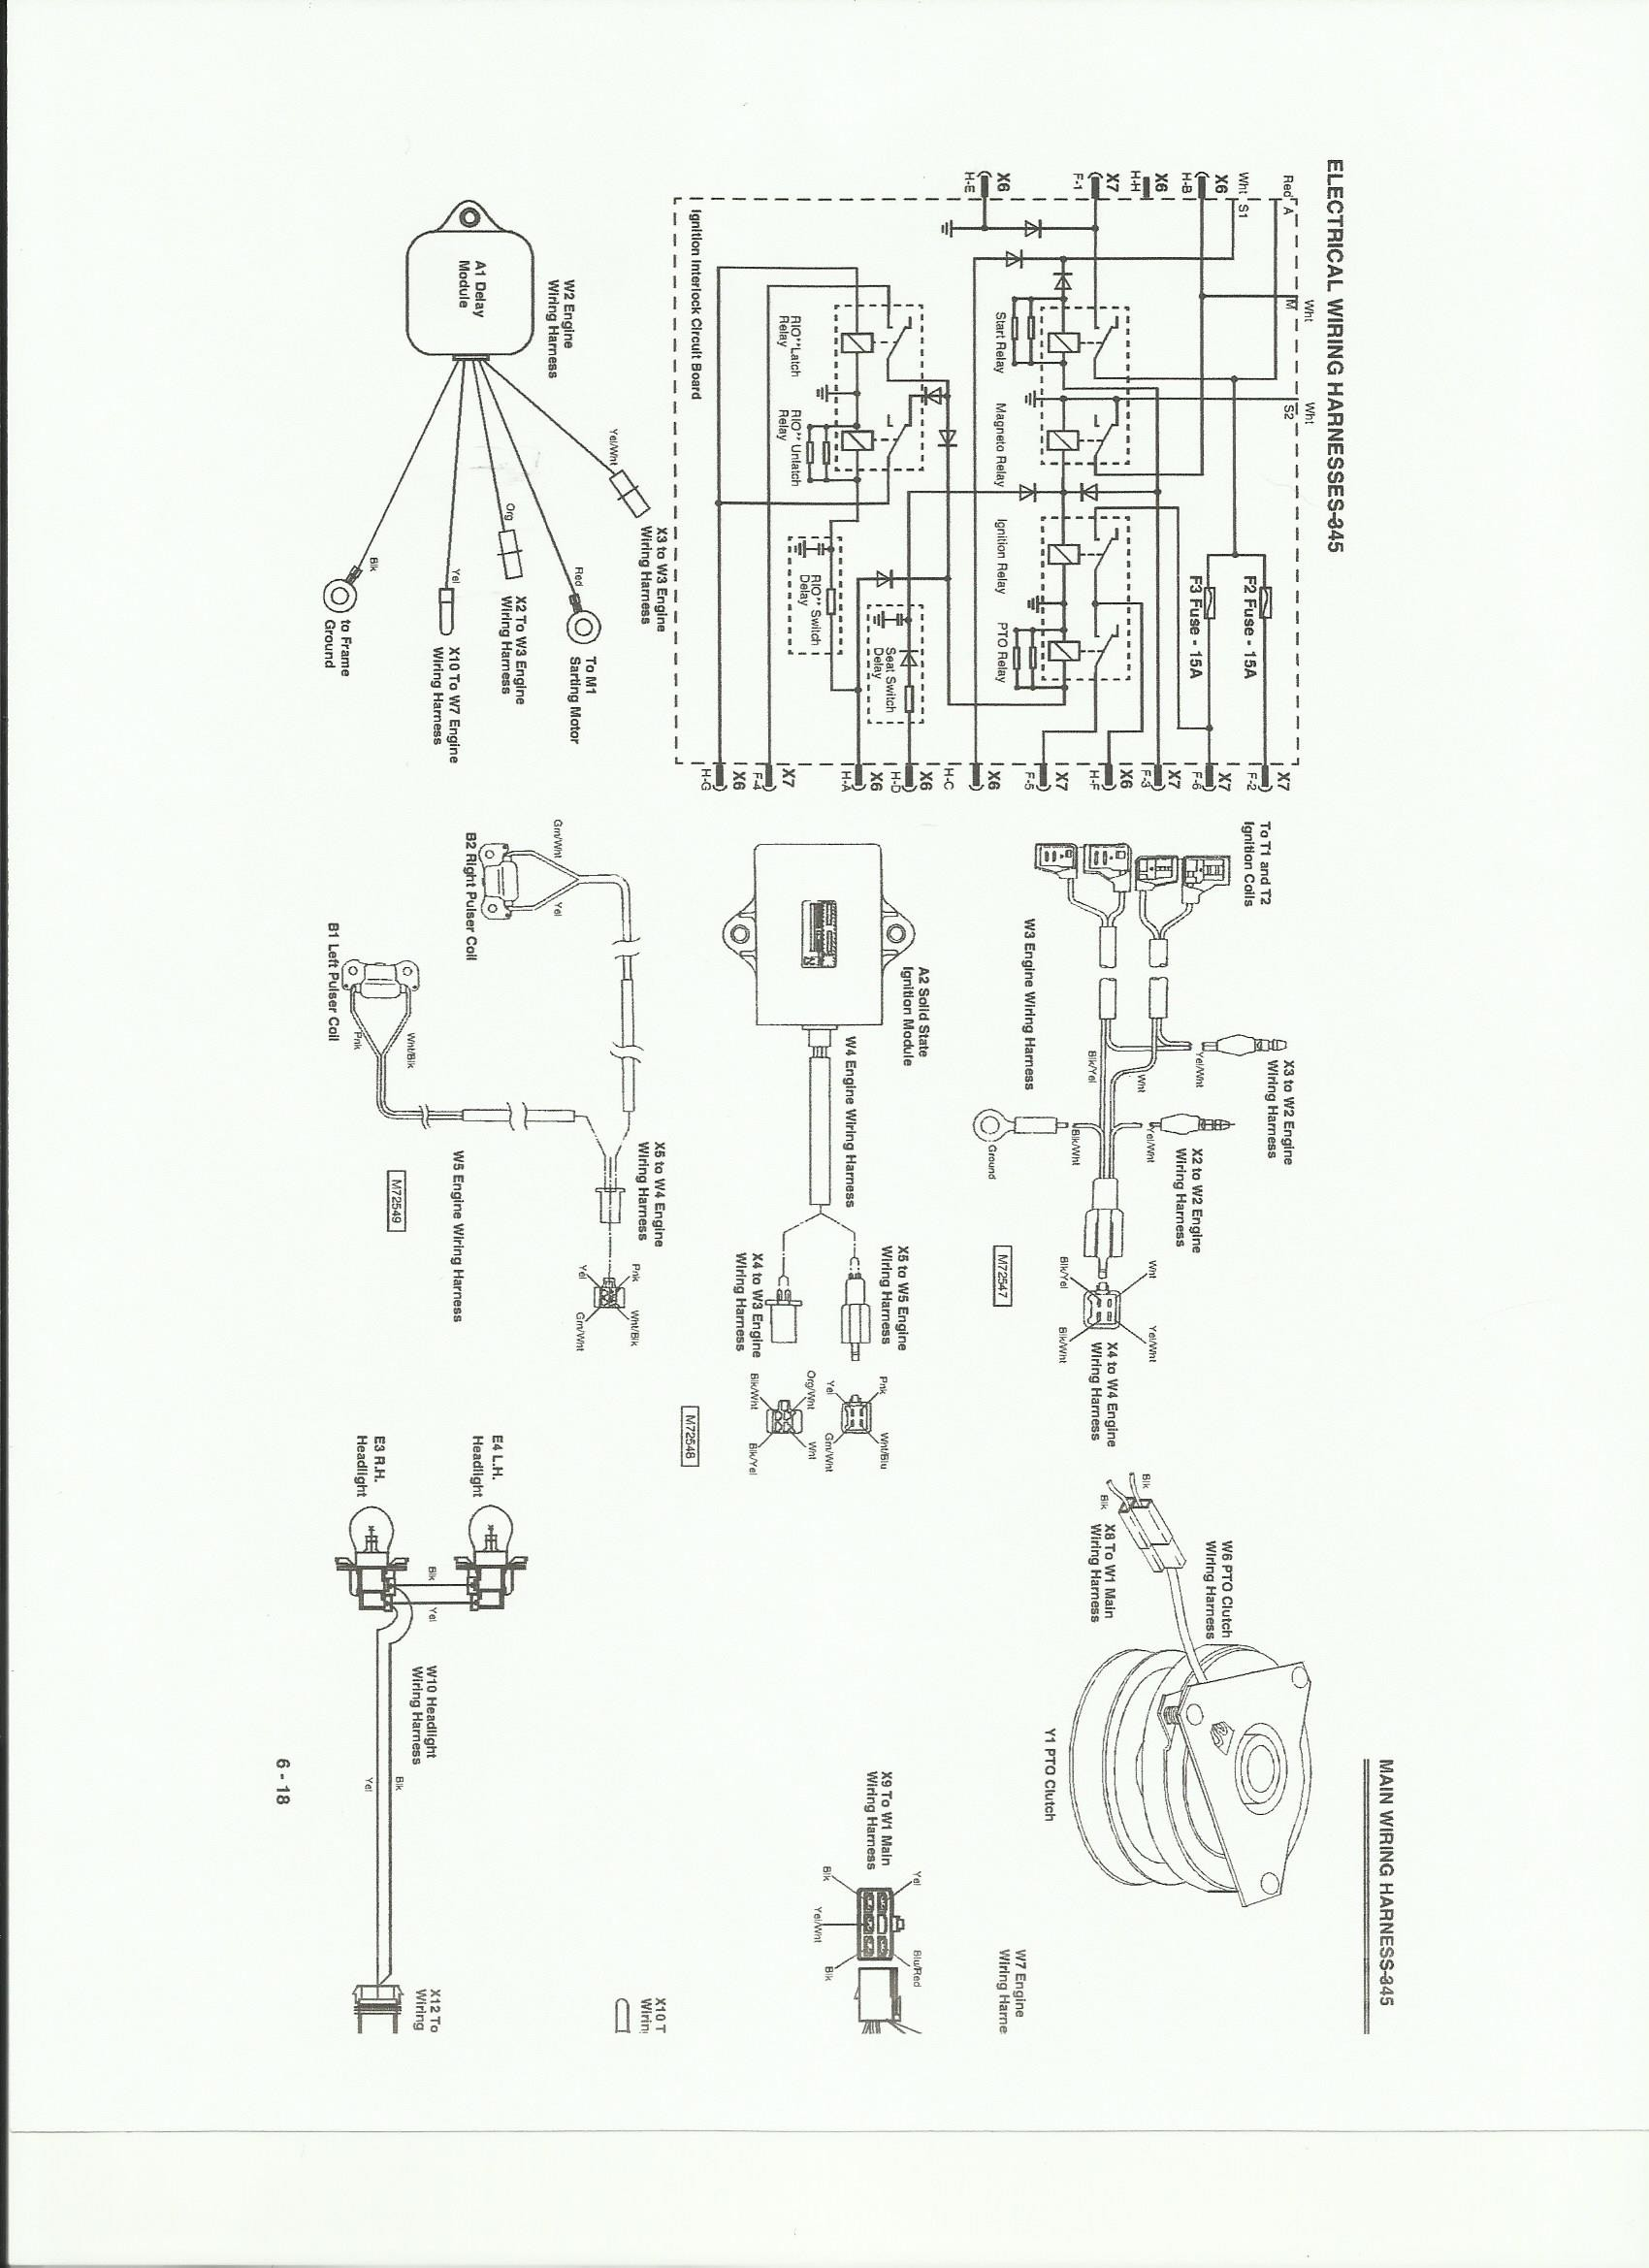 John Deere 345 Schematic Need A 345 Wiring Diagram Pdf Please Of John Deere 345 Schematic Cb 4290] for John Deere 1050 Tractor Wiring Diagram